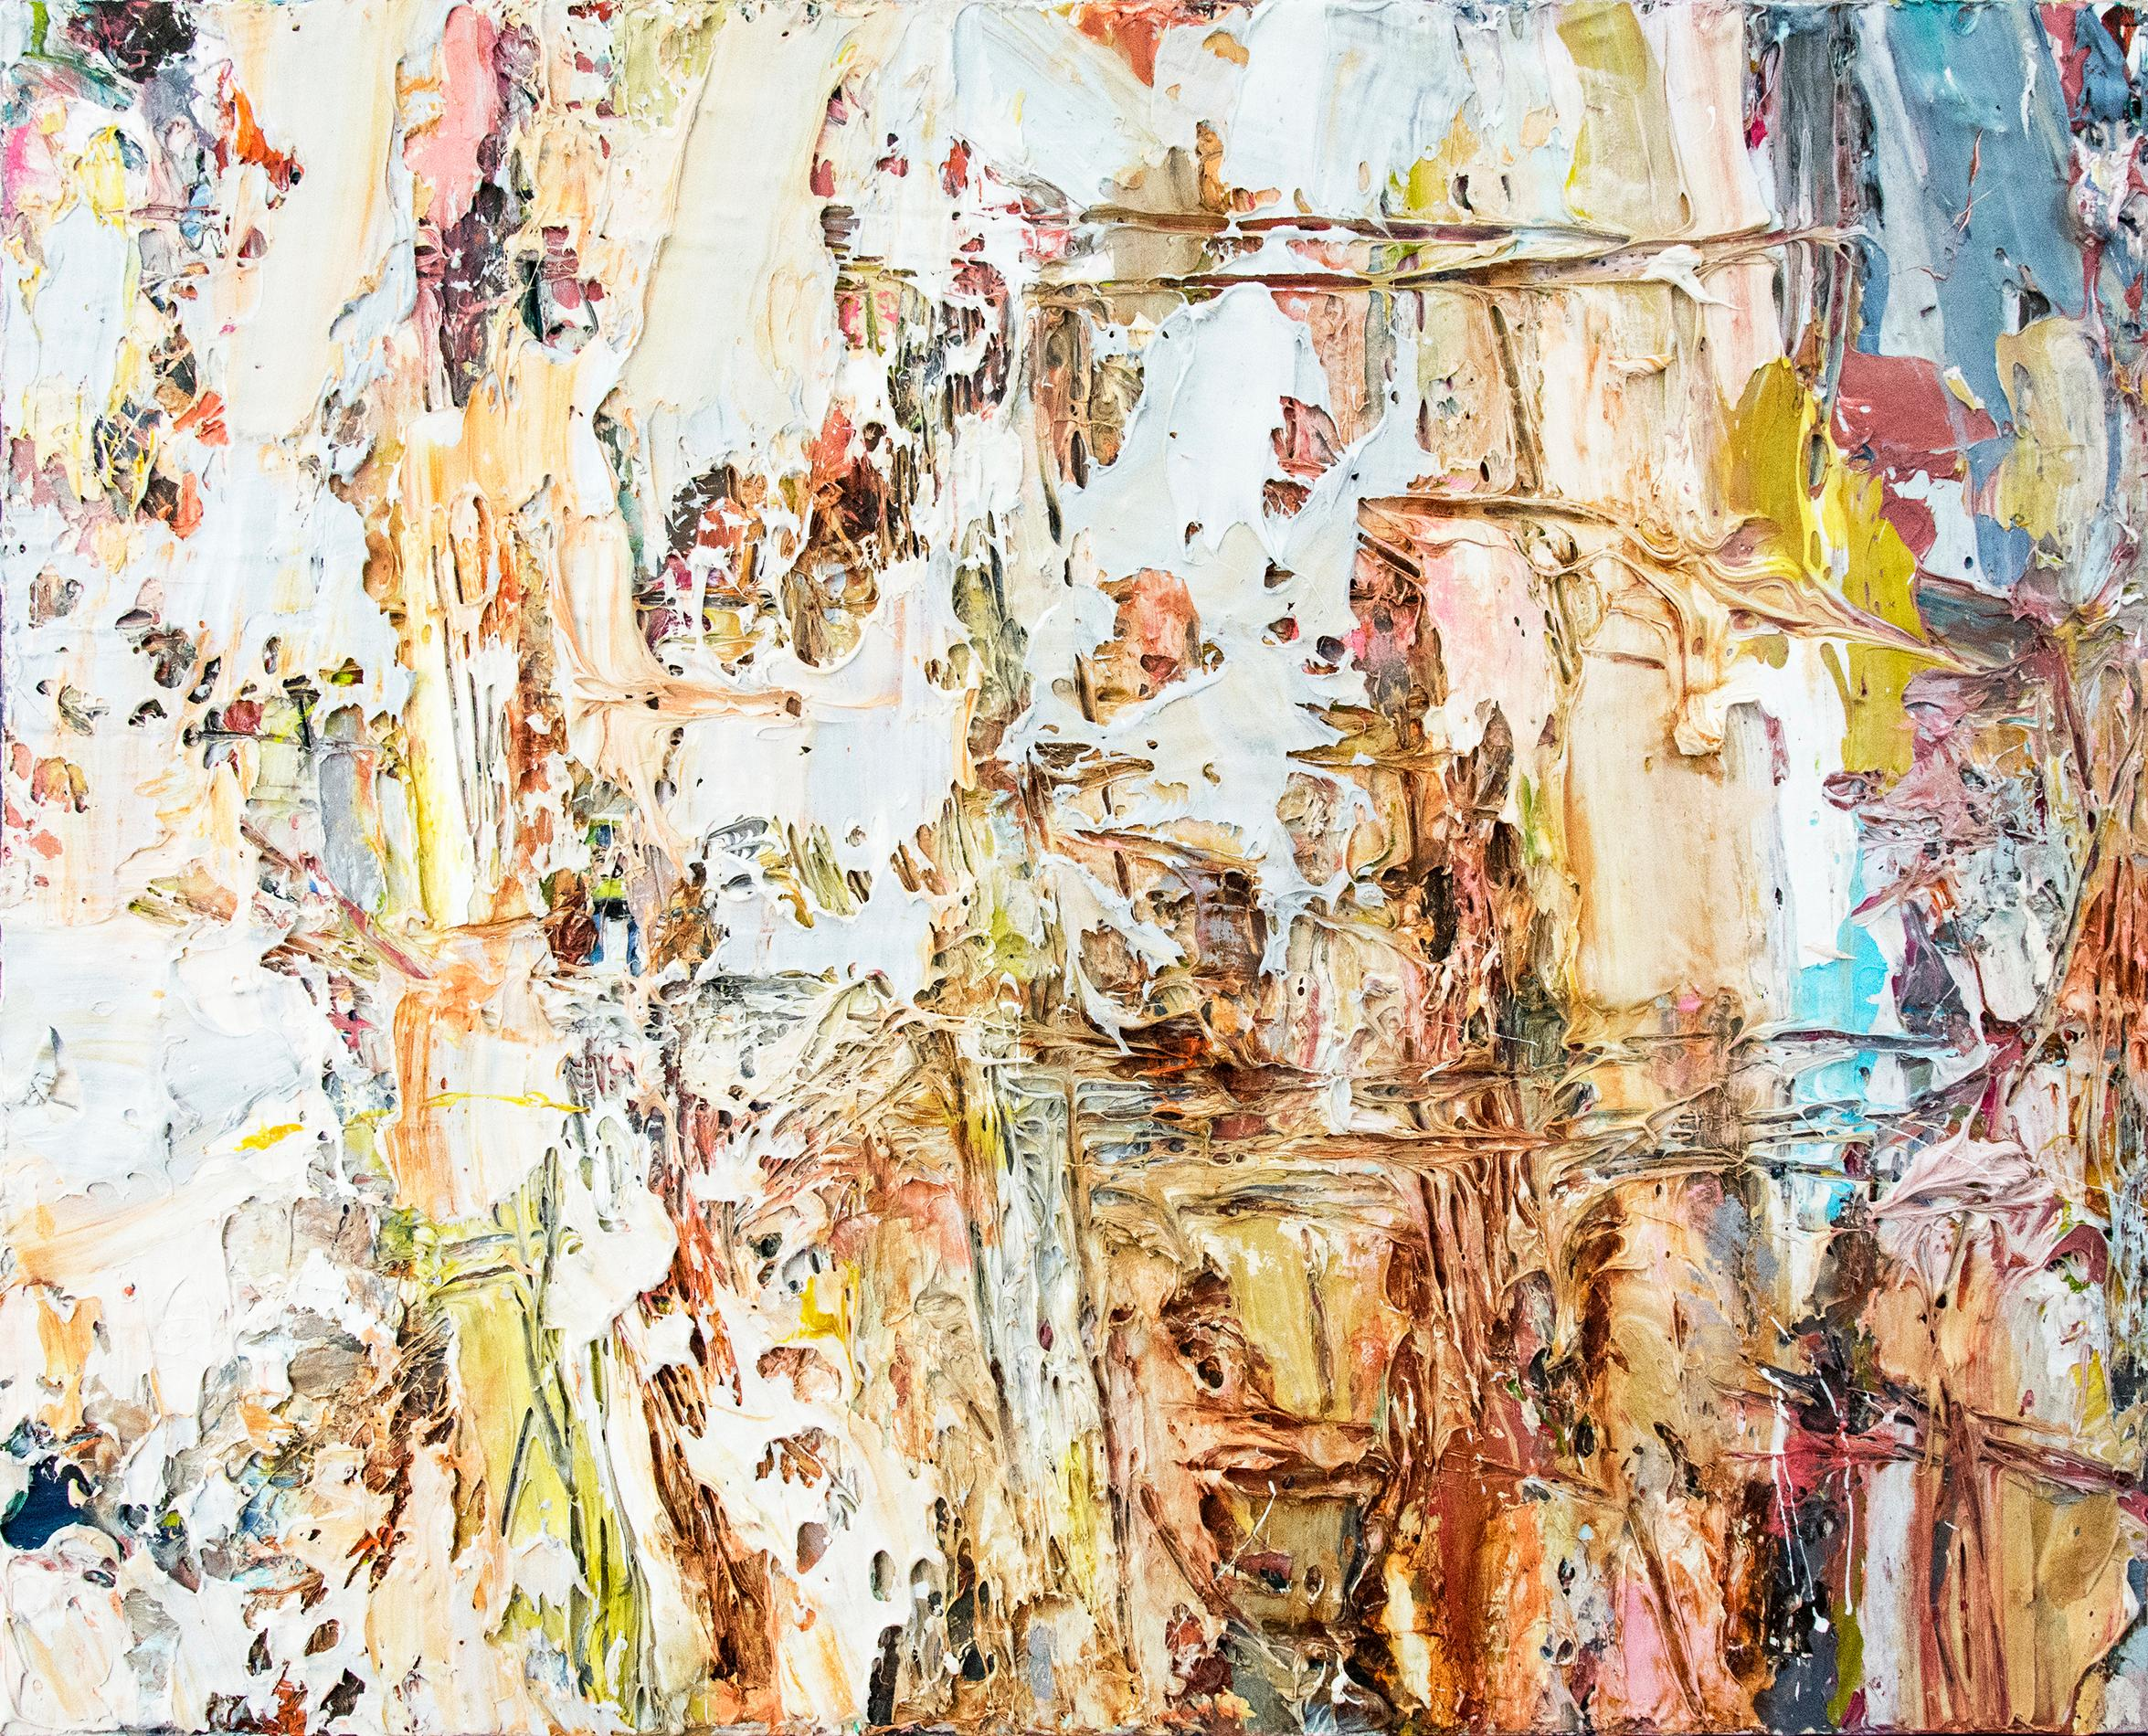 Sirocco - earthy, impasto, colourful, abstract expressionist, acrylic on canvas